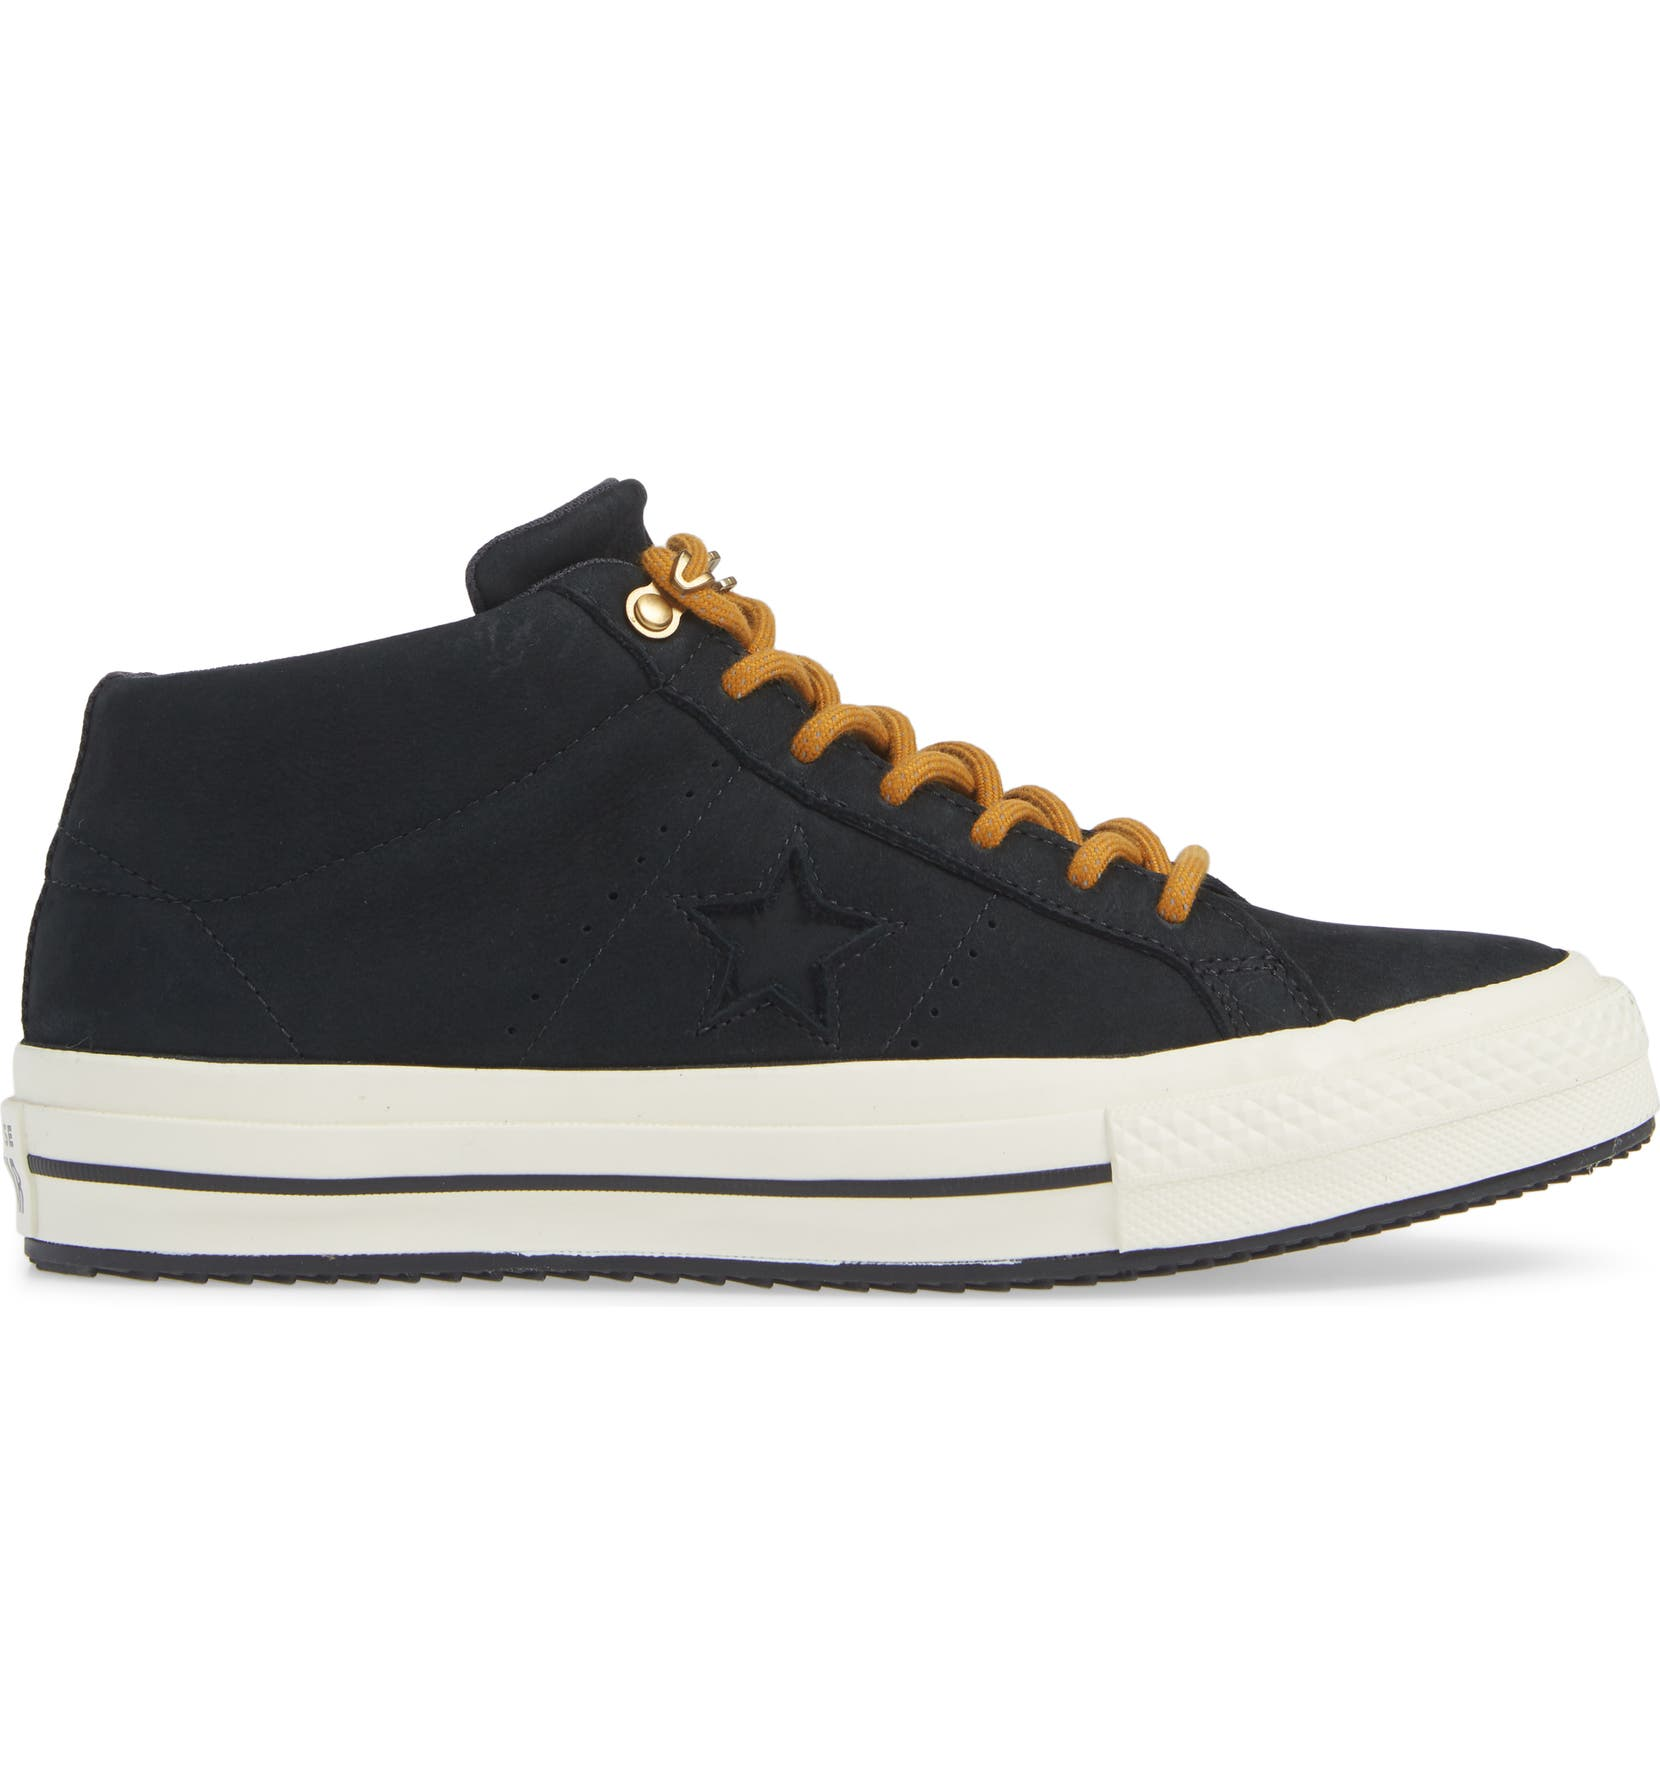 92dc66f2e98 Converse One Star Mid Counter Climate Scout Sneaker (Men)